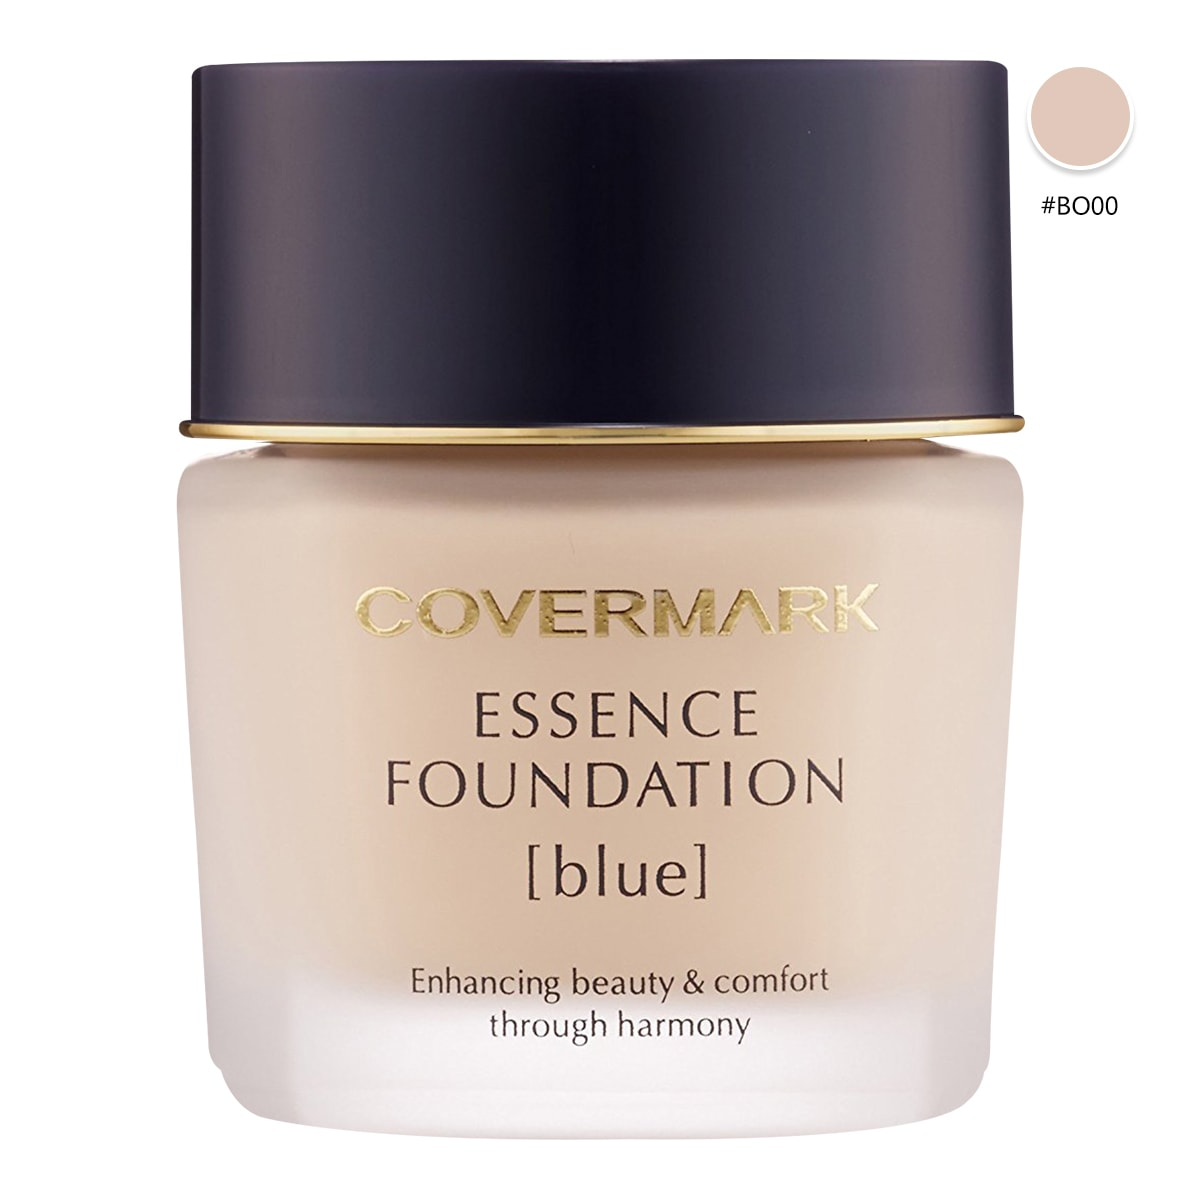 Yamibuy.com:Customer reviews:COVERMARK Essence Foundation Blue #BO00 30g